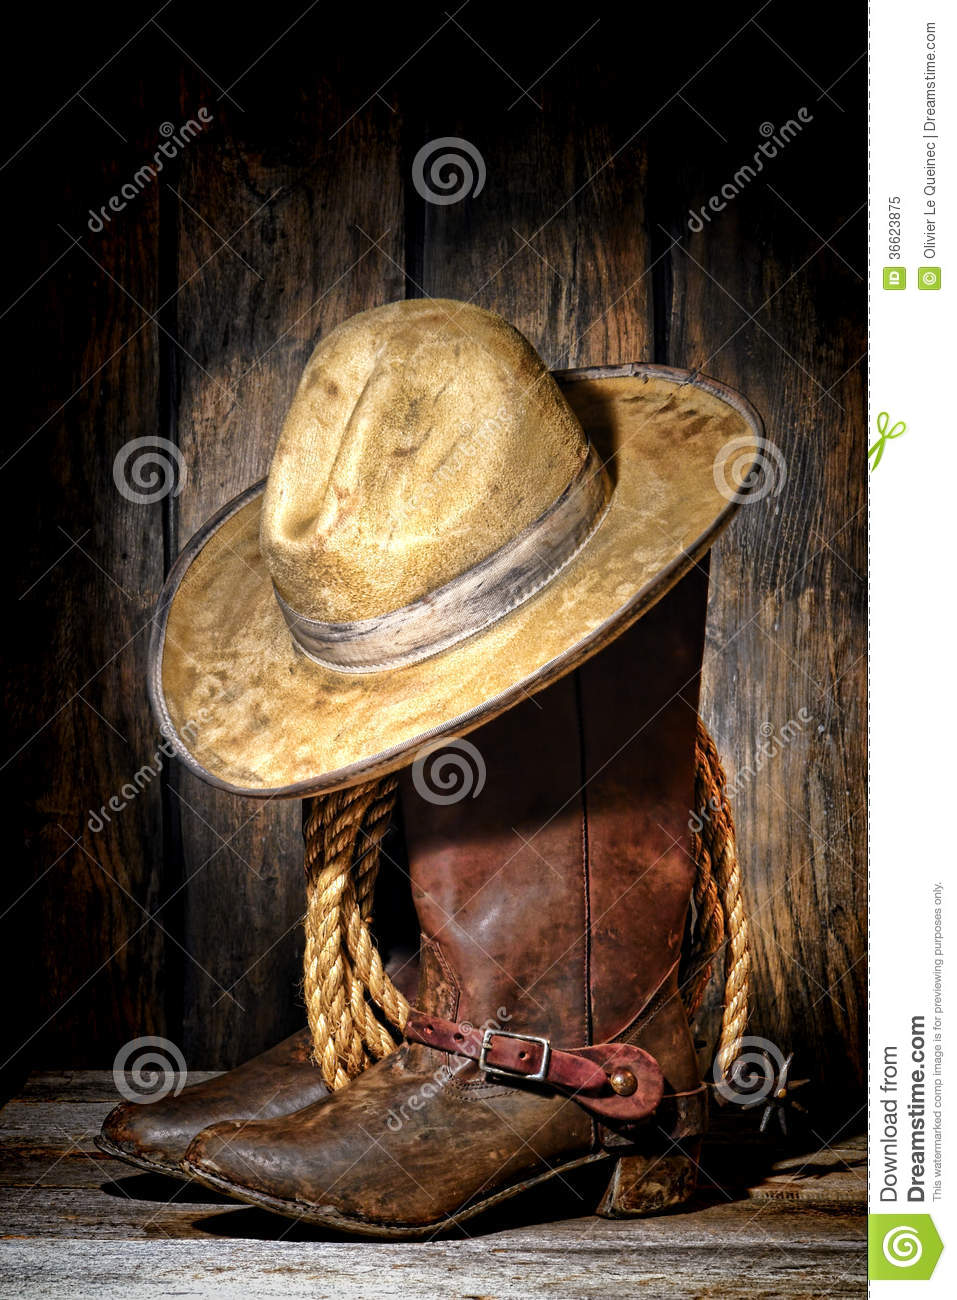 American West rodeo cowboy dirty and used white felt hat atop worn and  muddy leather working rancher boots with vintage spurs and old ranching  rope in an ... 360a6bb3a9e0